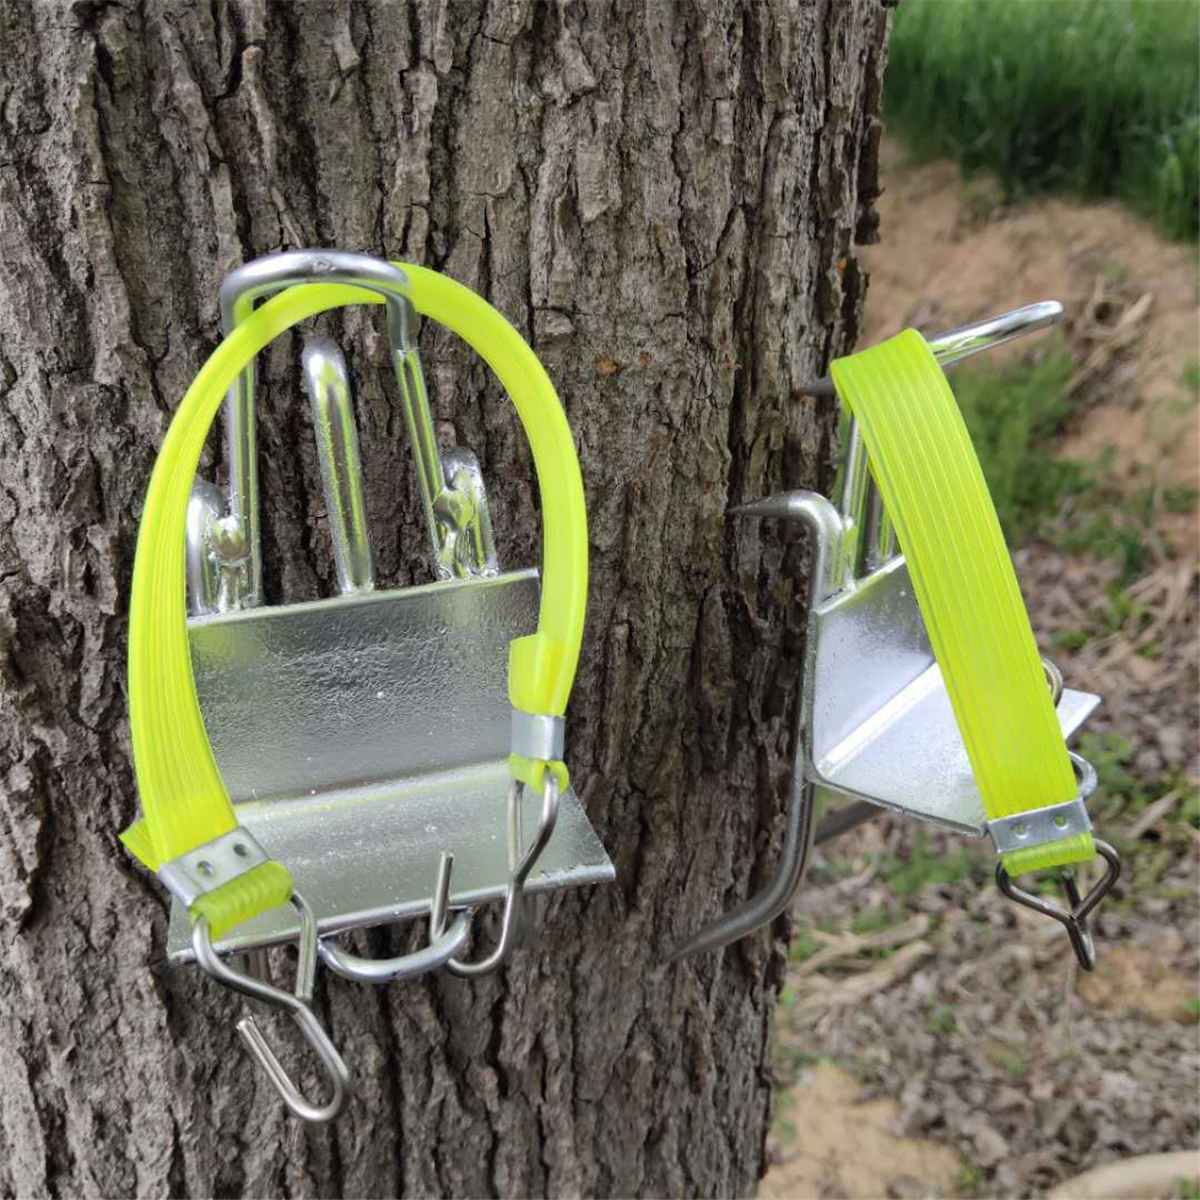 Climbing-Safe-Tool Adjustable Harness Simple-Use New-Tree-Climbing-Tool For Picking Hunting Stainless Steel Pole Spurs Climber